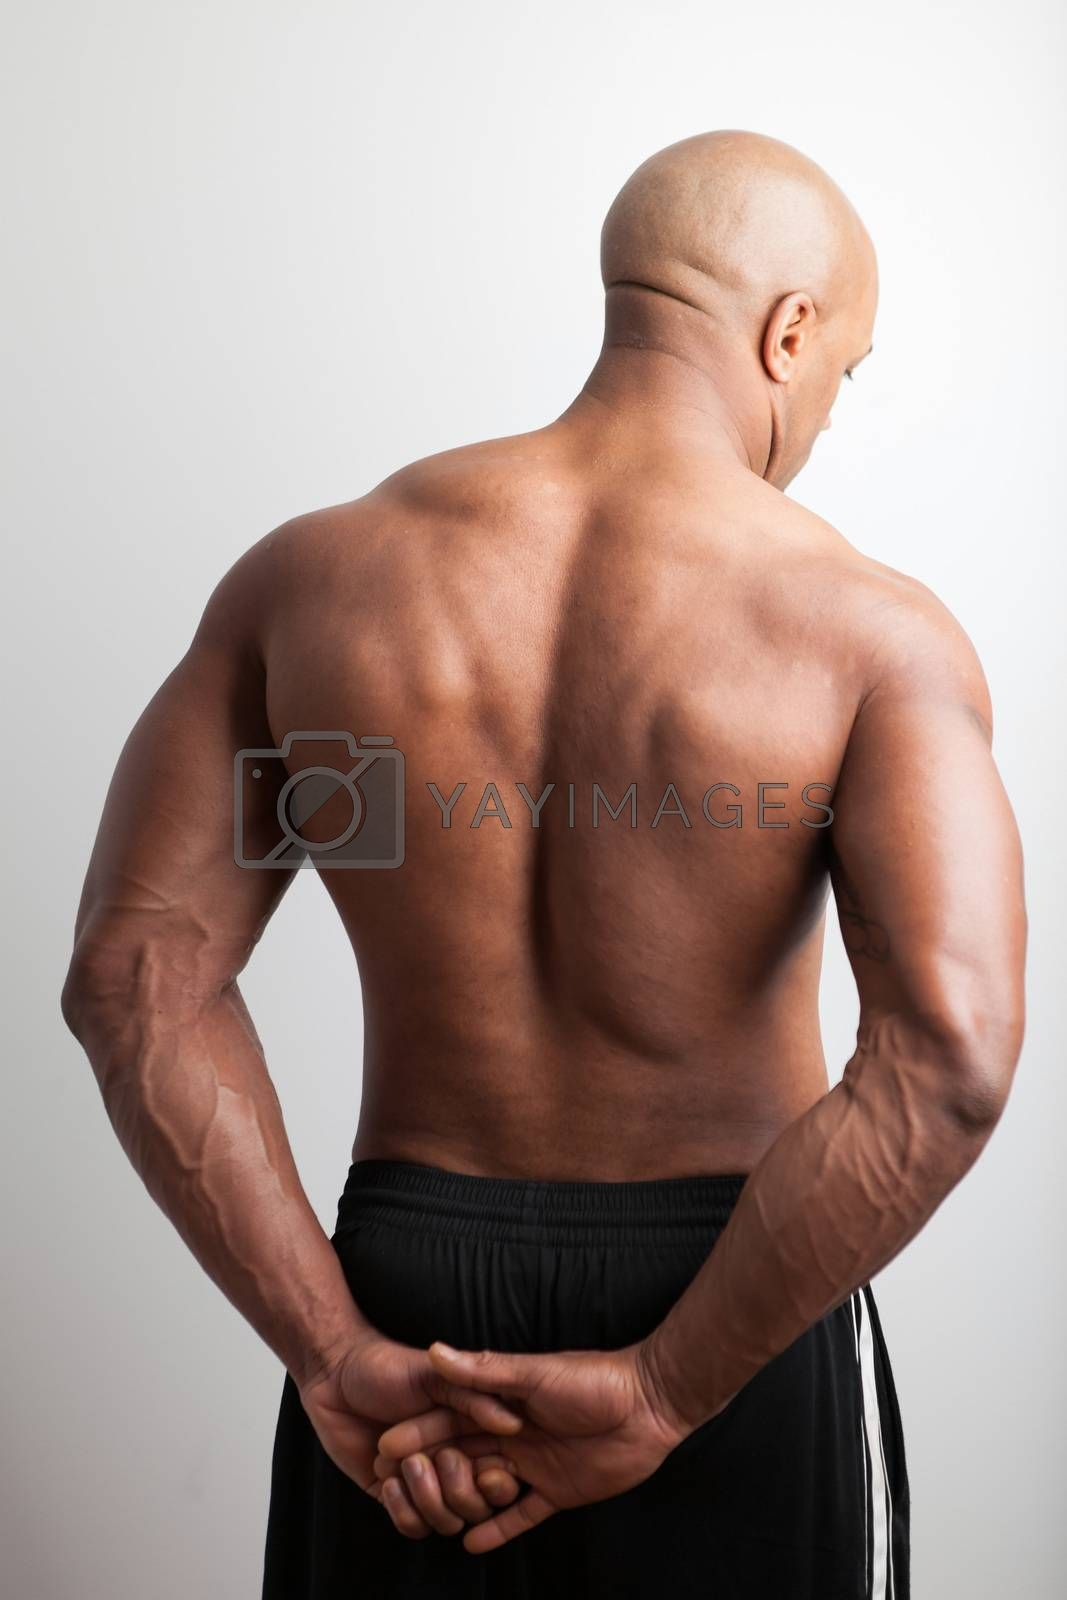 Royalty free image of Muscular Back by graficallyminded